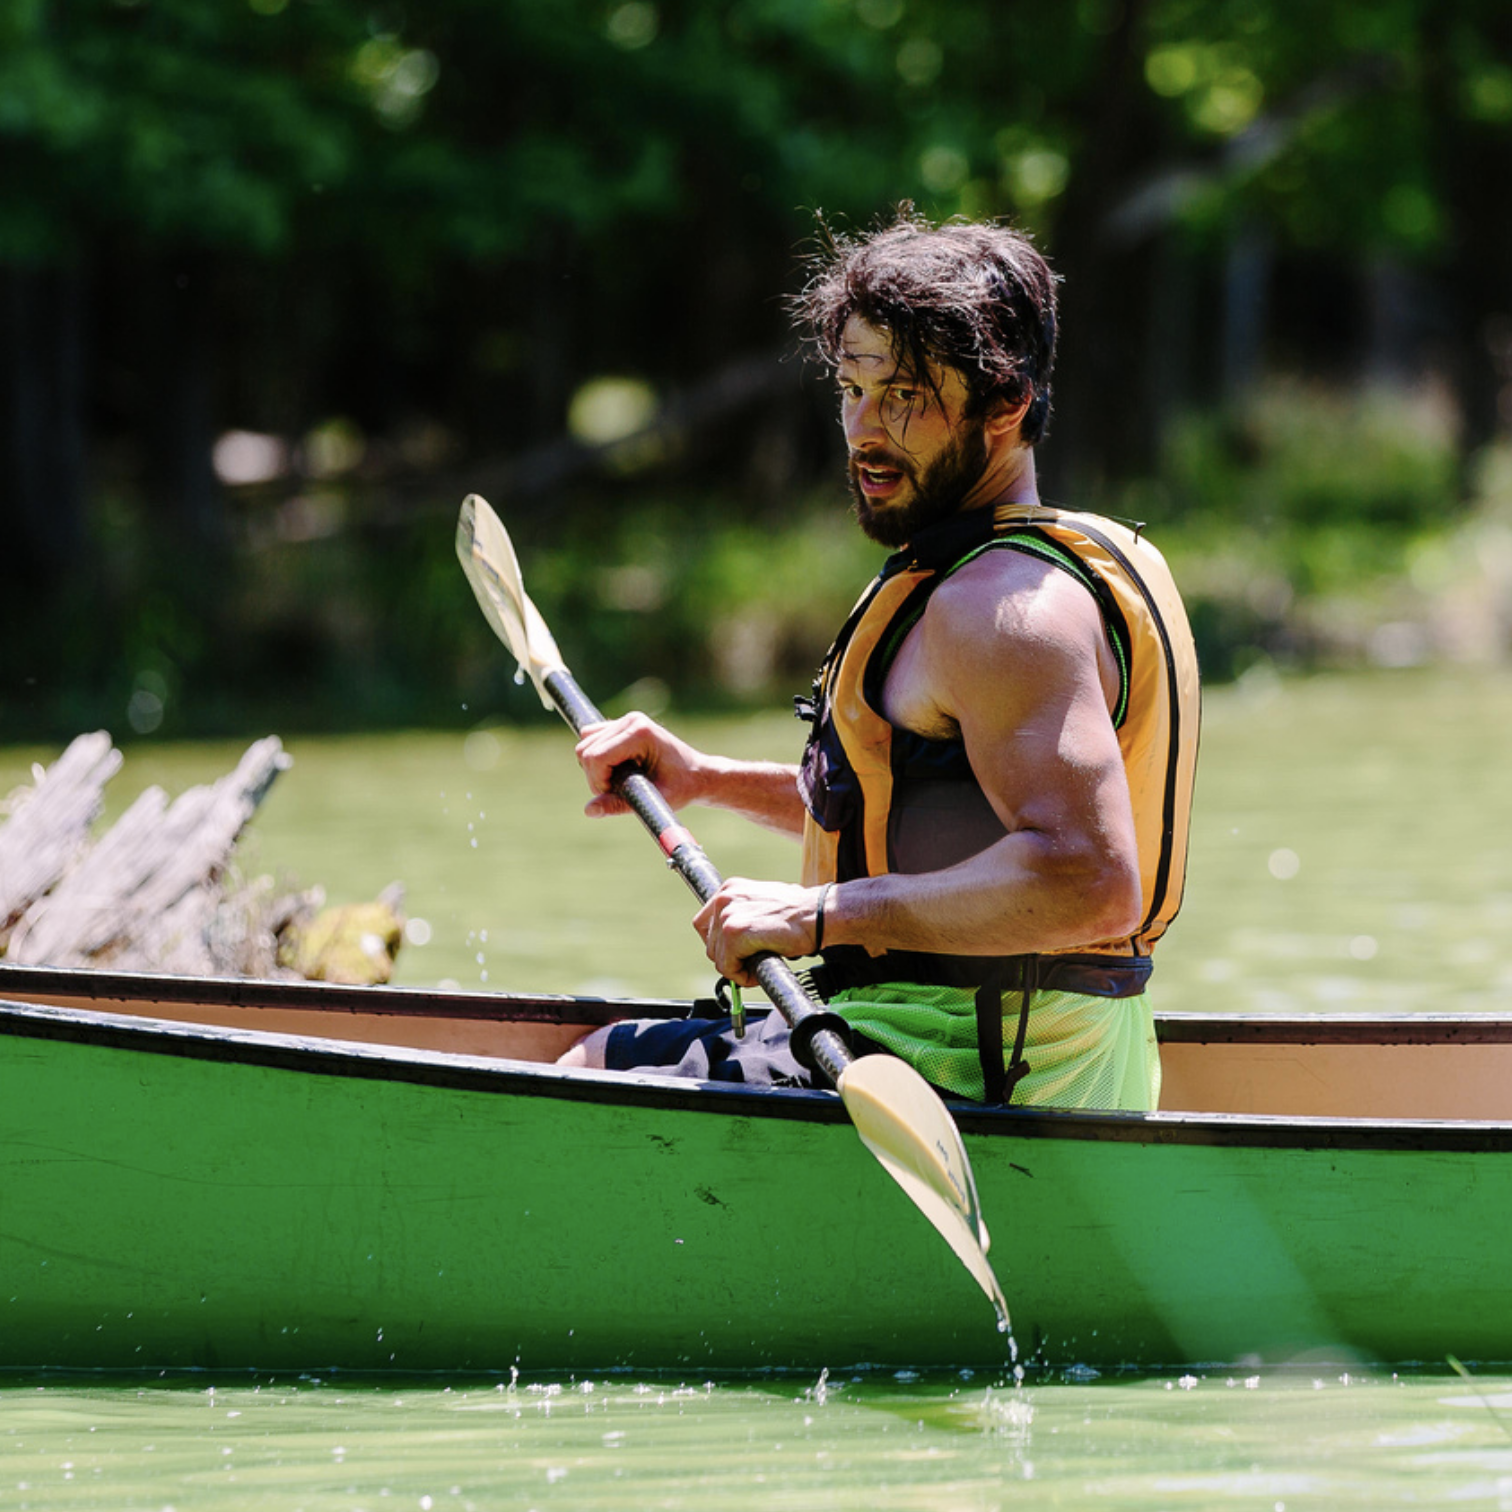 river canoeing -